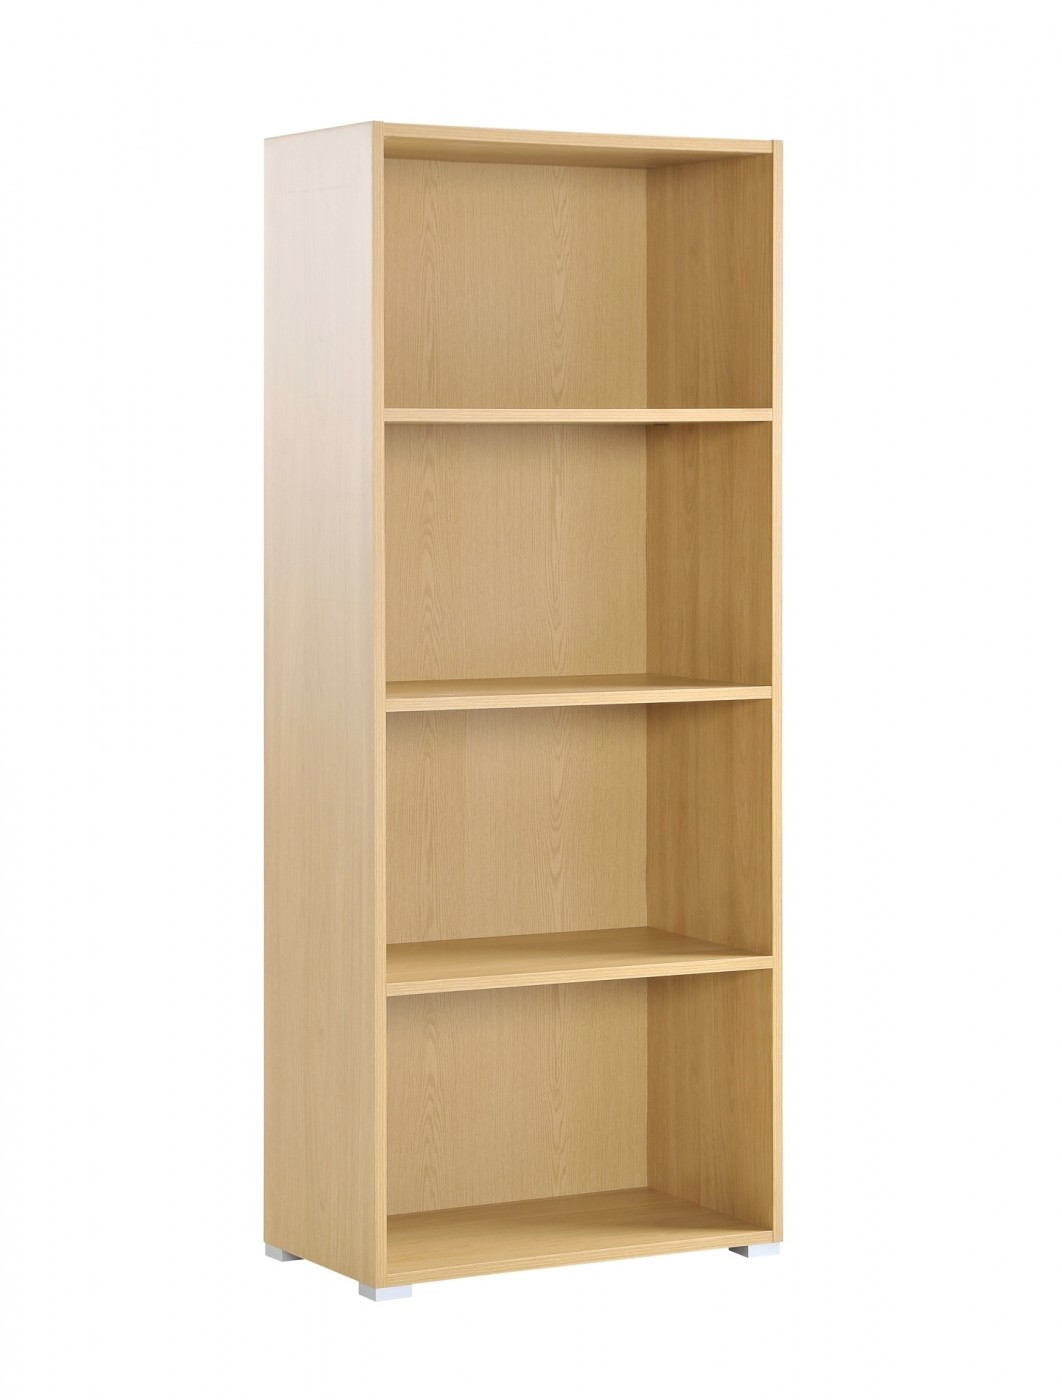 [ 7 foot high bookcases ]